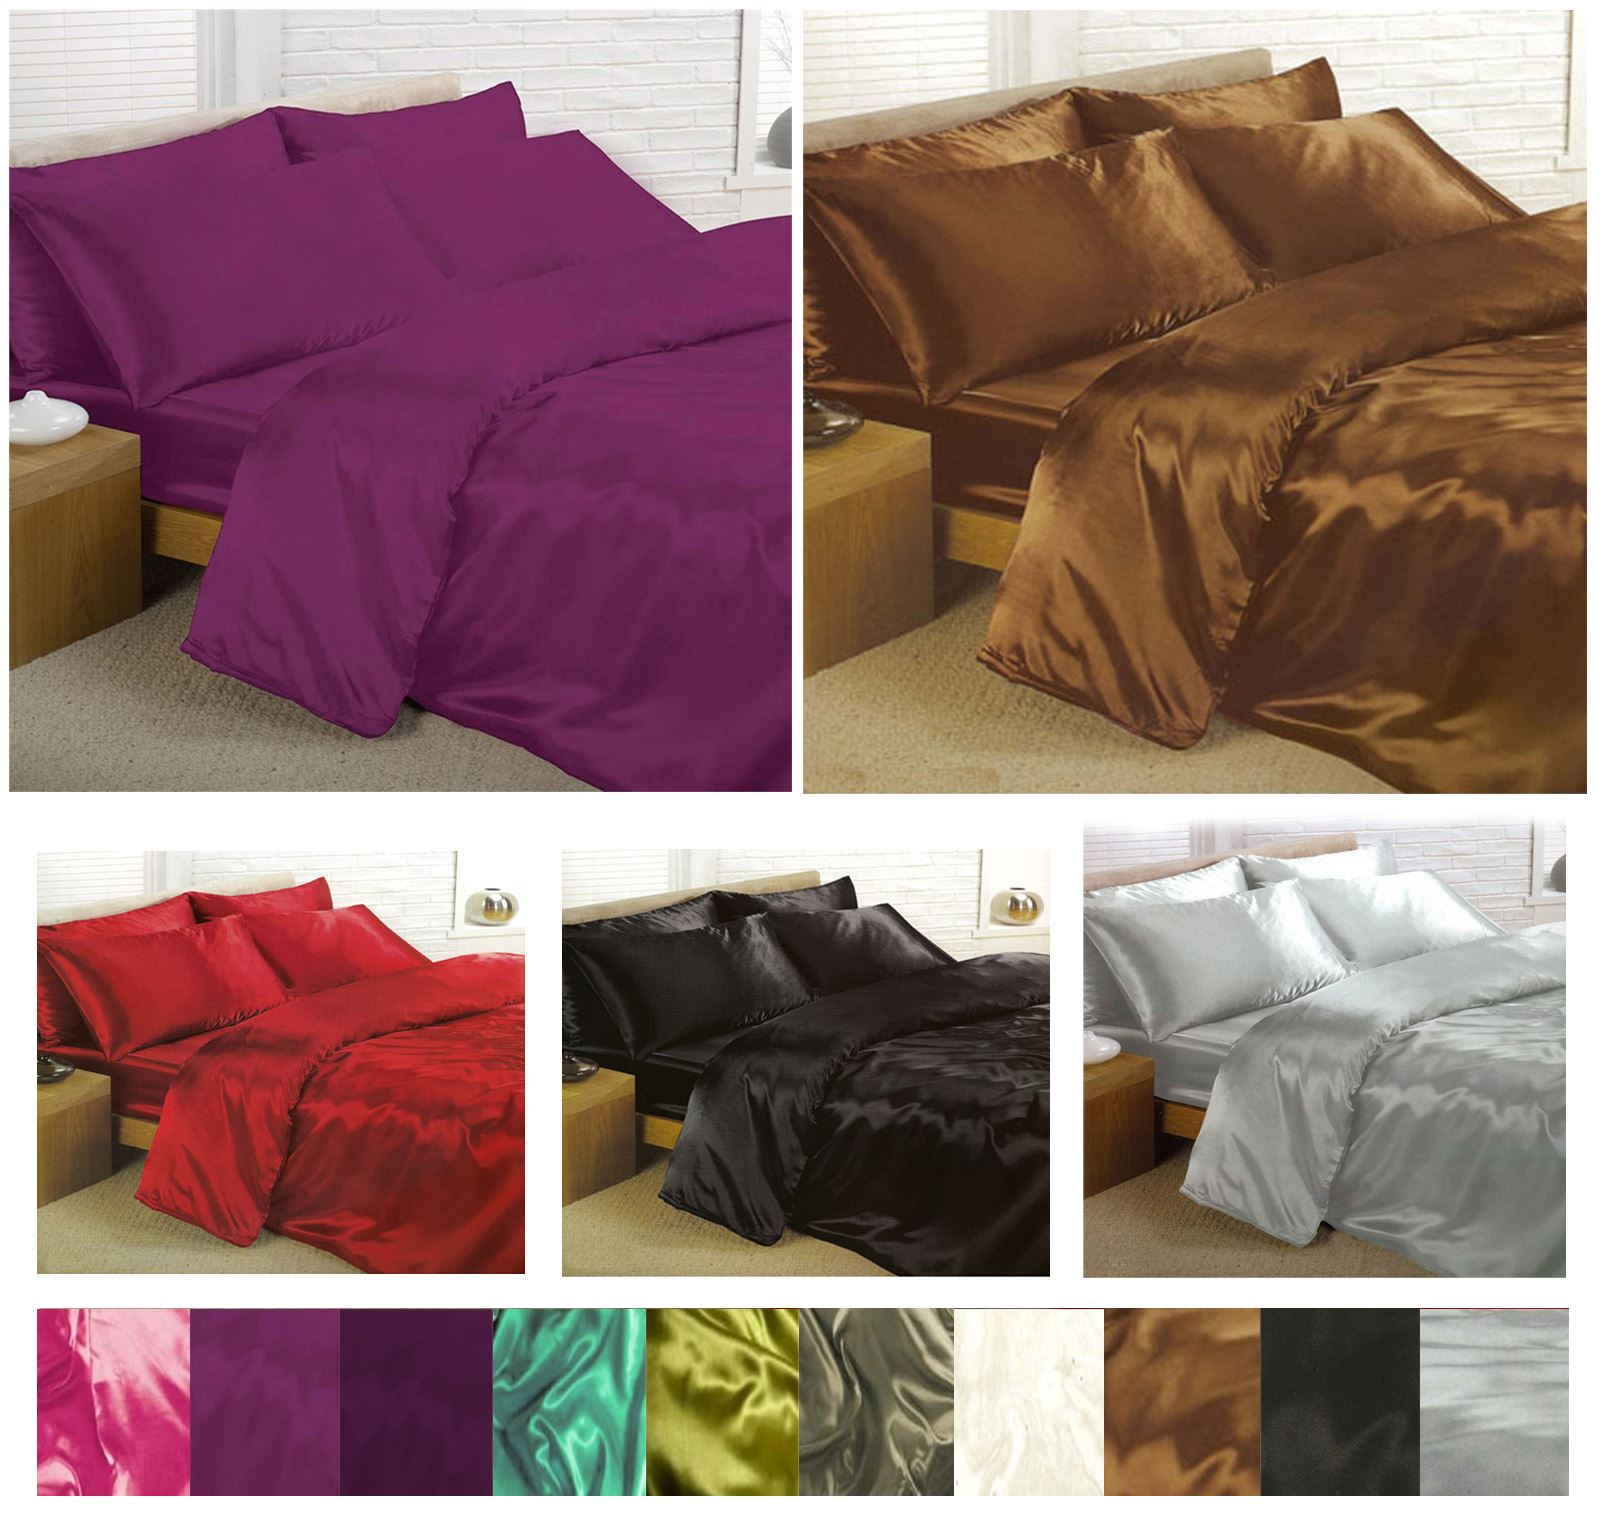 Satin-Bedding-Sets-6-Piece-Set-Duvet-Cover-Fitted-Sheet-Pillowcases